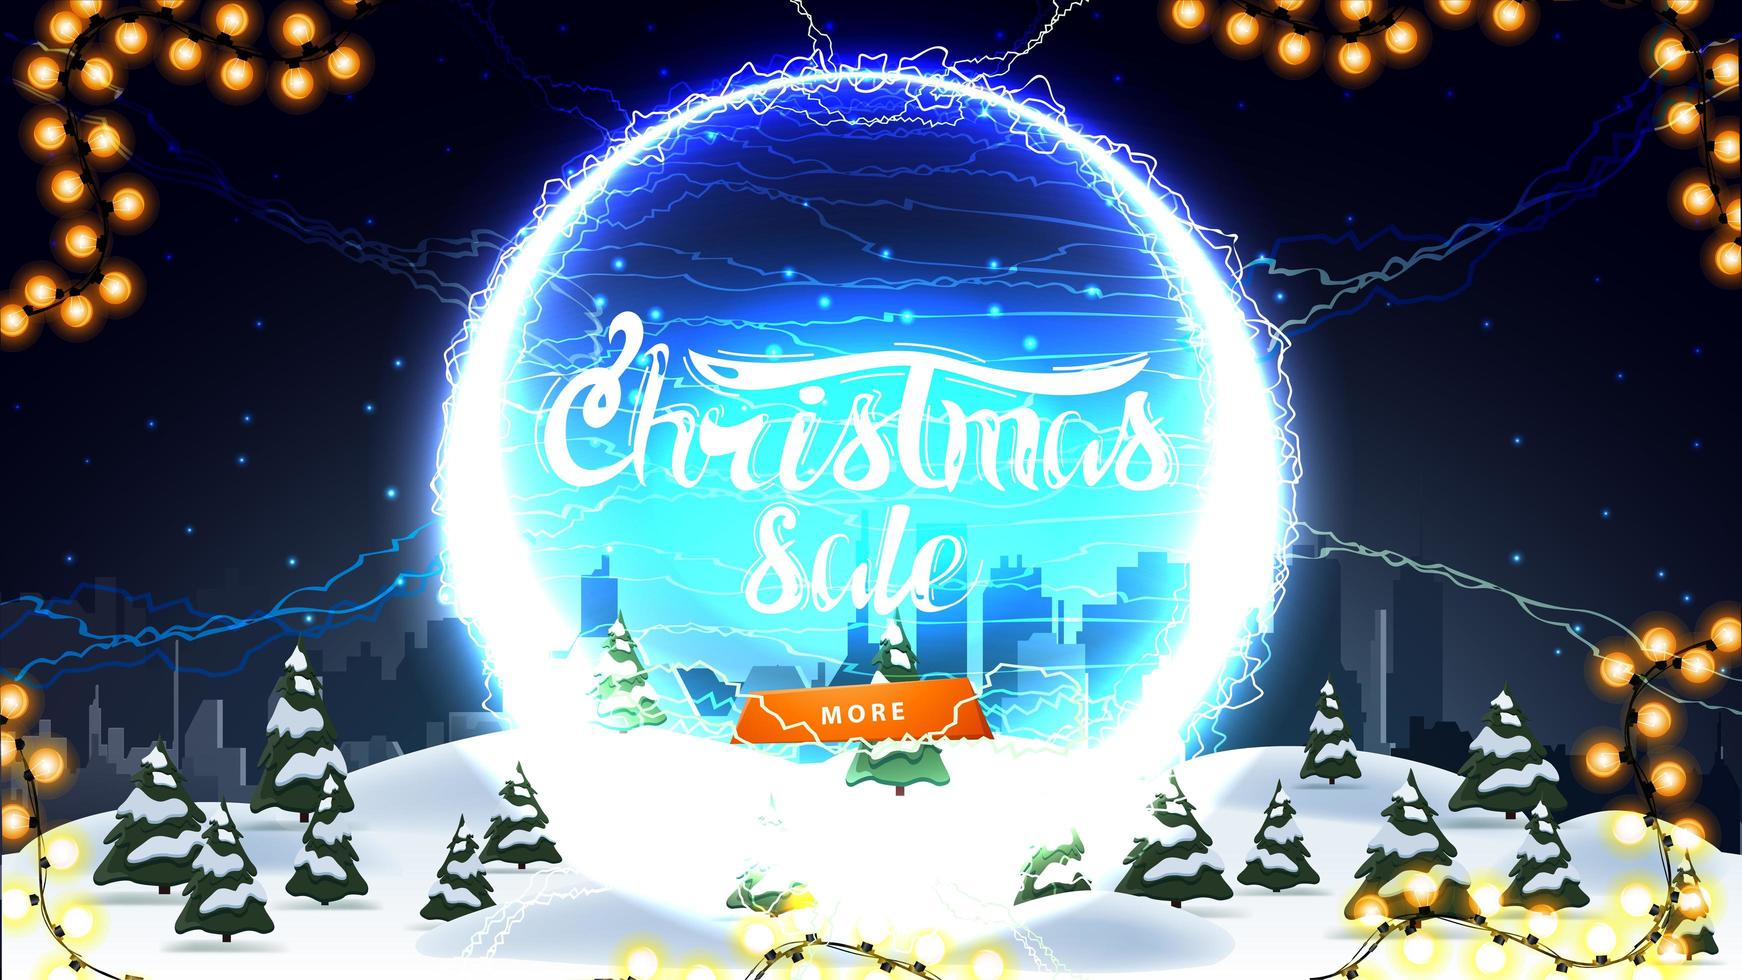 Christmas sale, discount banner with winter landscape, starry sky, button and round portal with lightning bolts and offer vector